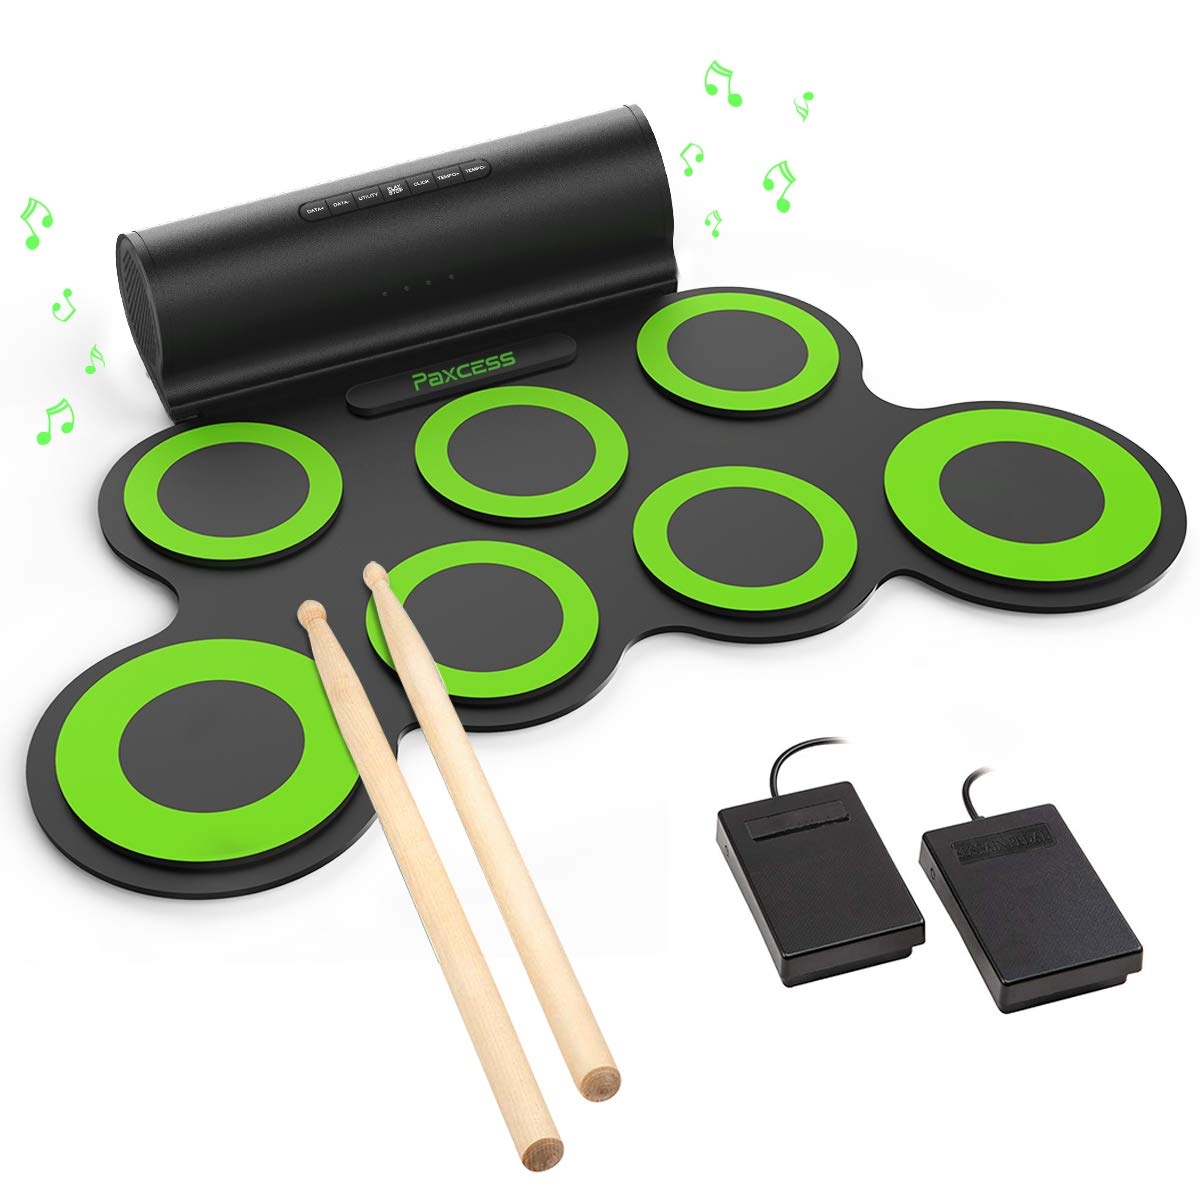 PAXCESS Electronic Drum Set, Roll Up Drum Practice Pad Midi Drum Kit with Headphone Jack Built-in Speaker Drum Pedals Drum Sticks 10 Hours Playtime, Great Holiday Birthday Gift for Kids by PAXCESS